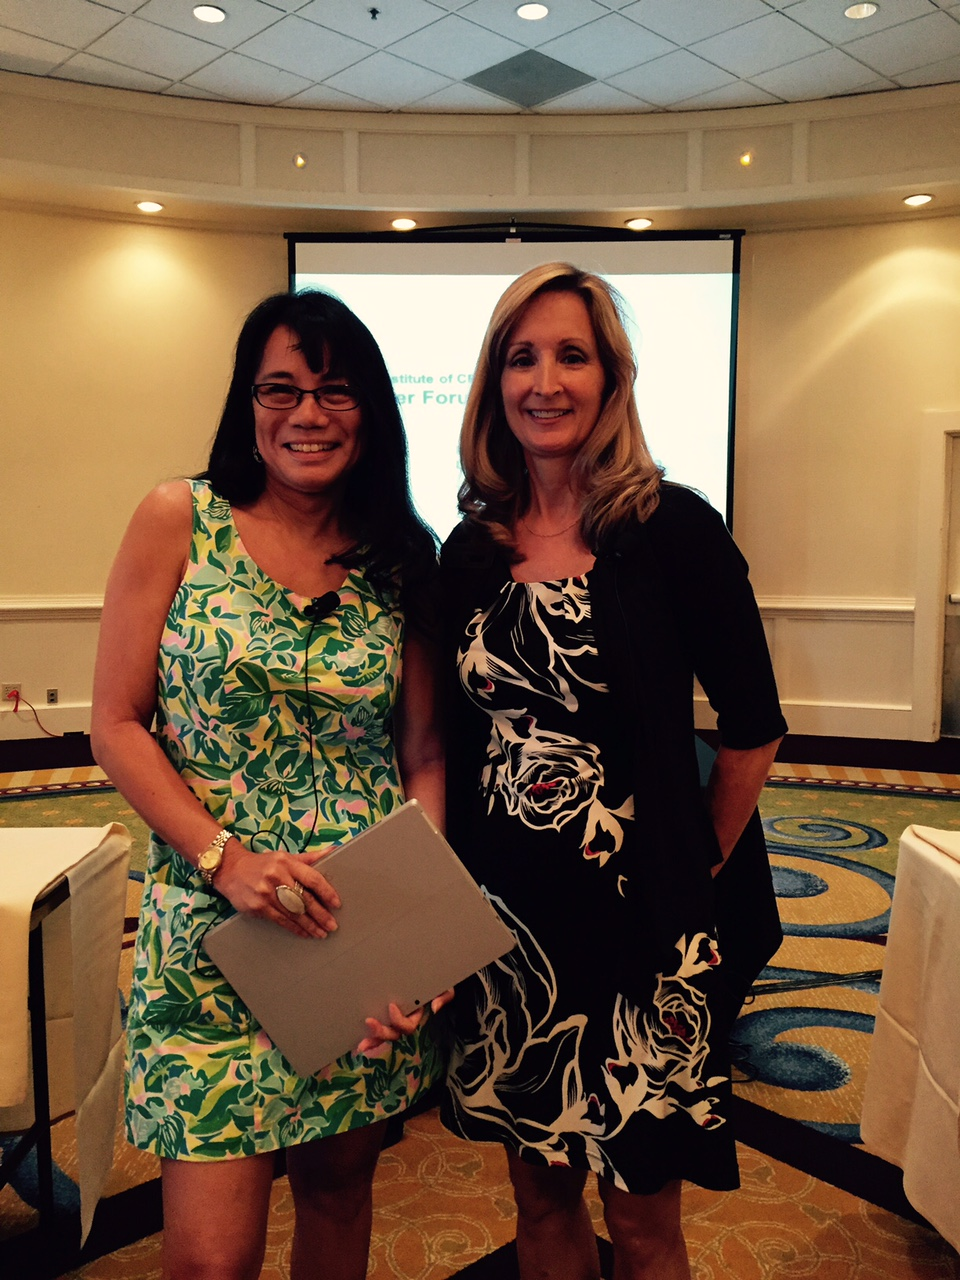 Image: The FICPA's Board Chair Mia Thomas (left) and President/CEO Deborah Curry facilitated FICPA Planning Days.